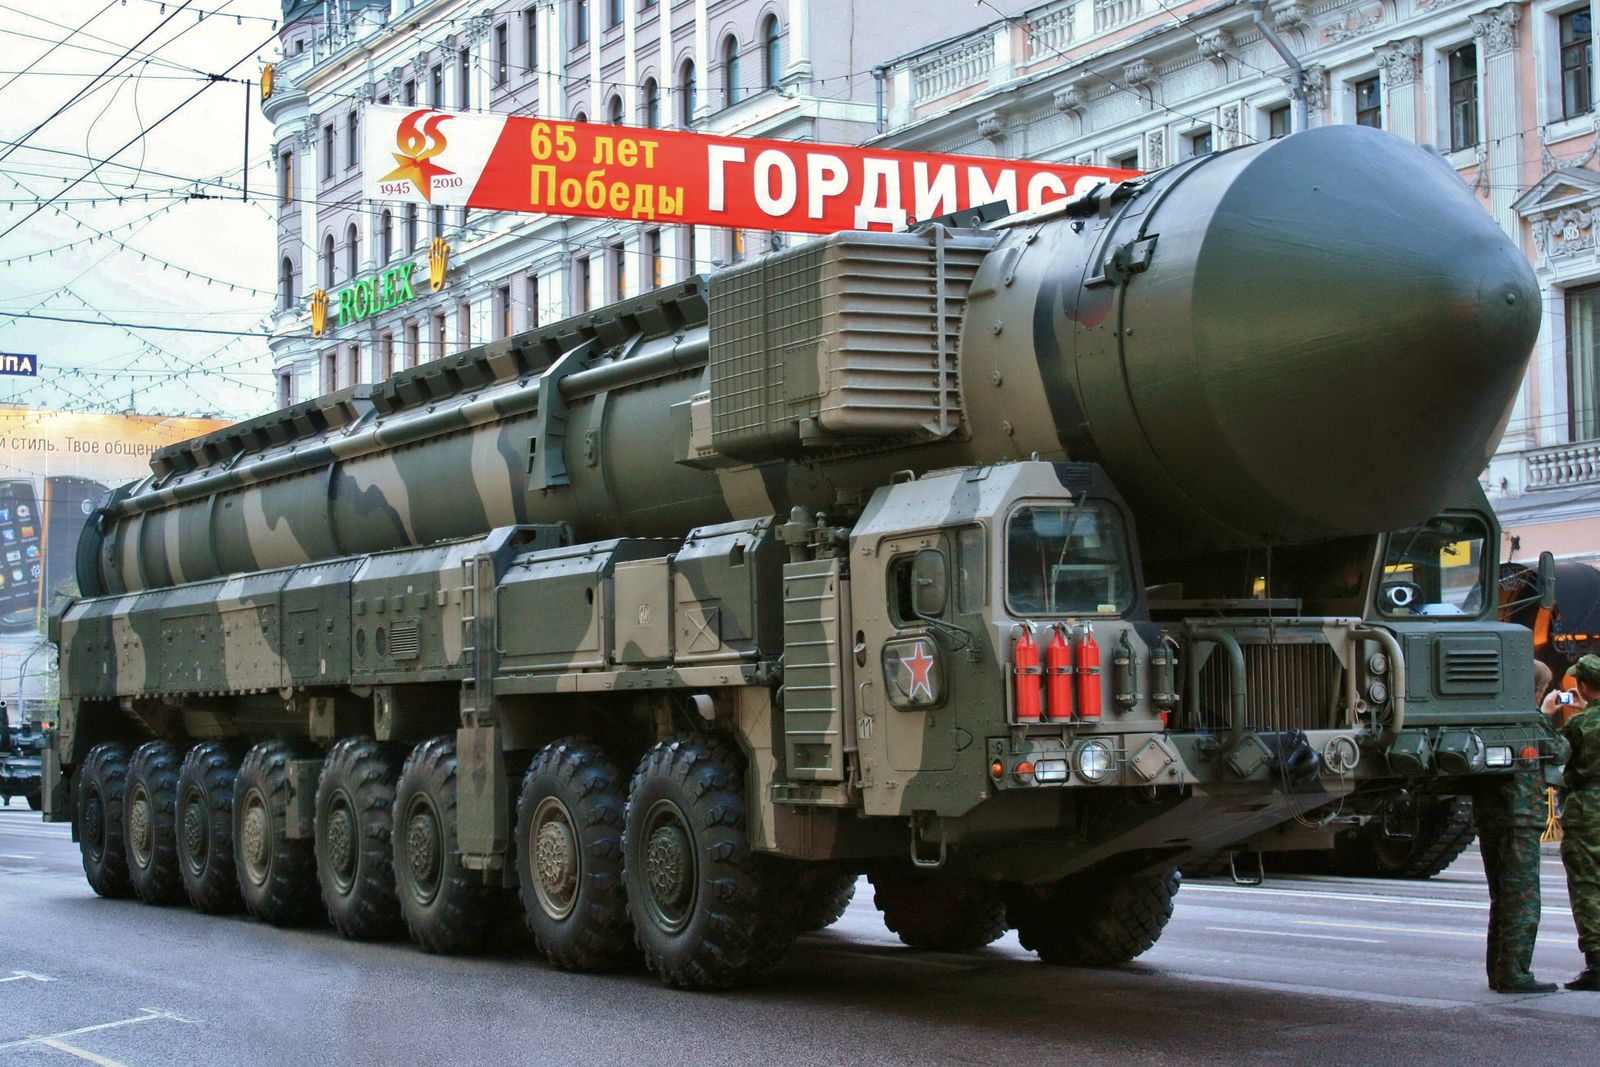 VIDEO: Watch Russia Test Out Its Very Own Missile Defense System